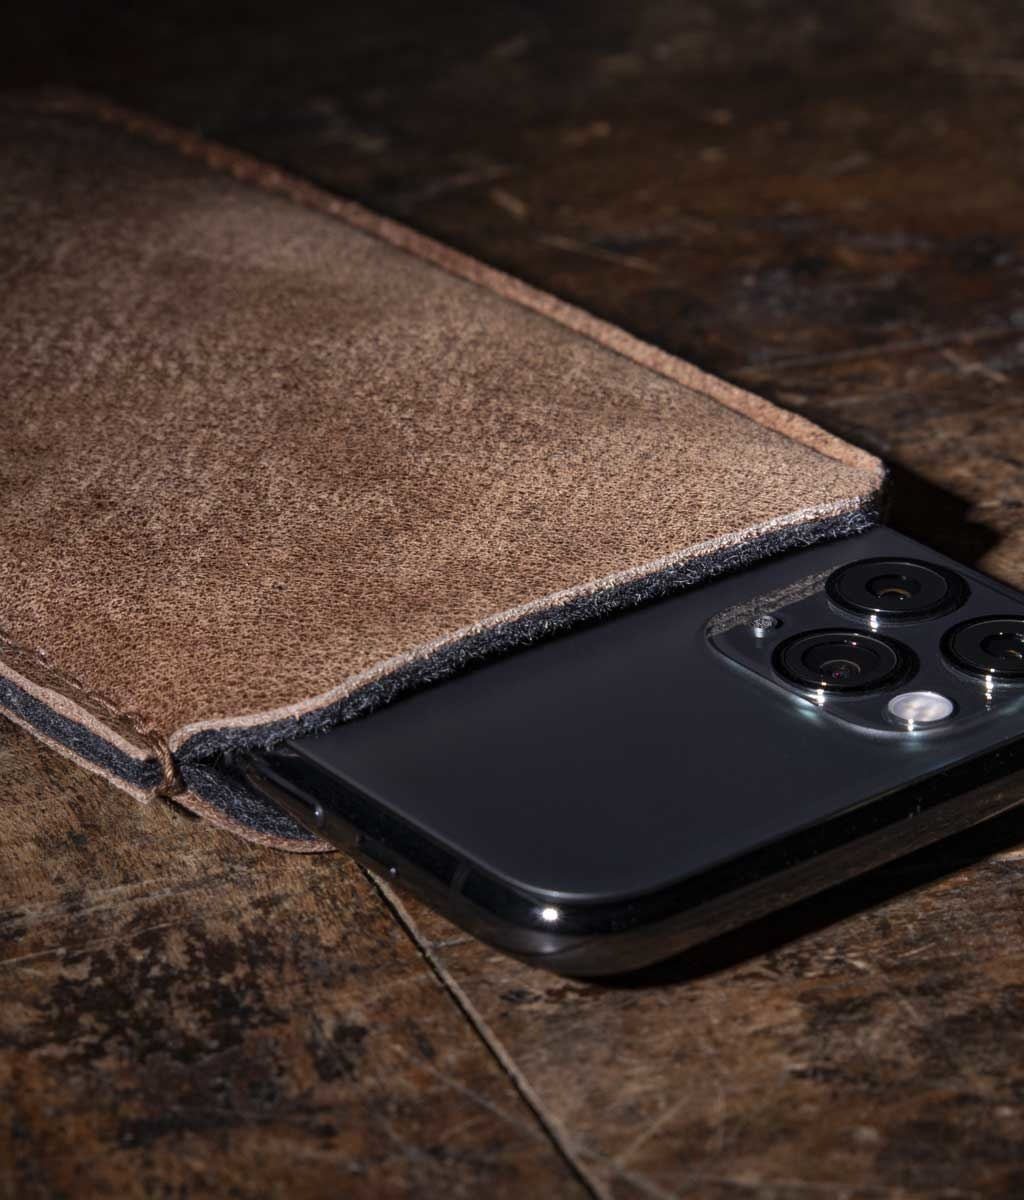 iPhone 11 Pro SE Xs Max XR 8 case leather sleeve felt lining DATENSCHUTZ